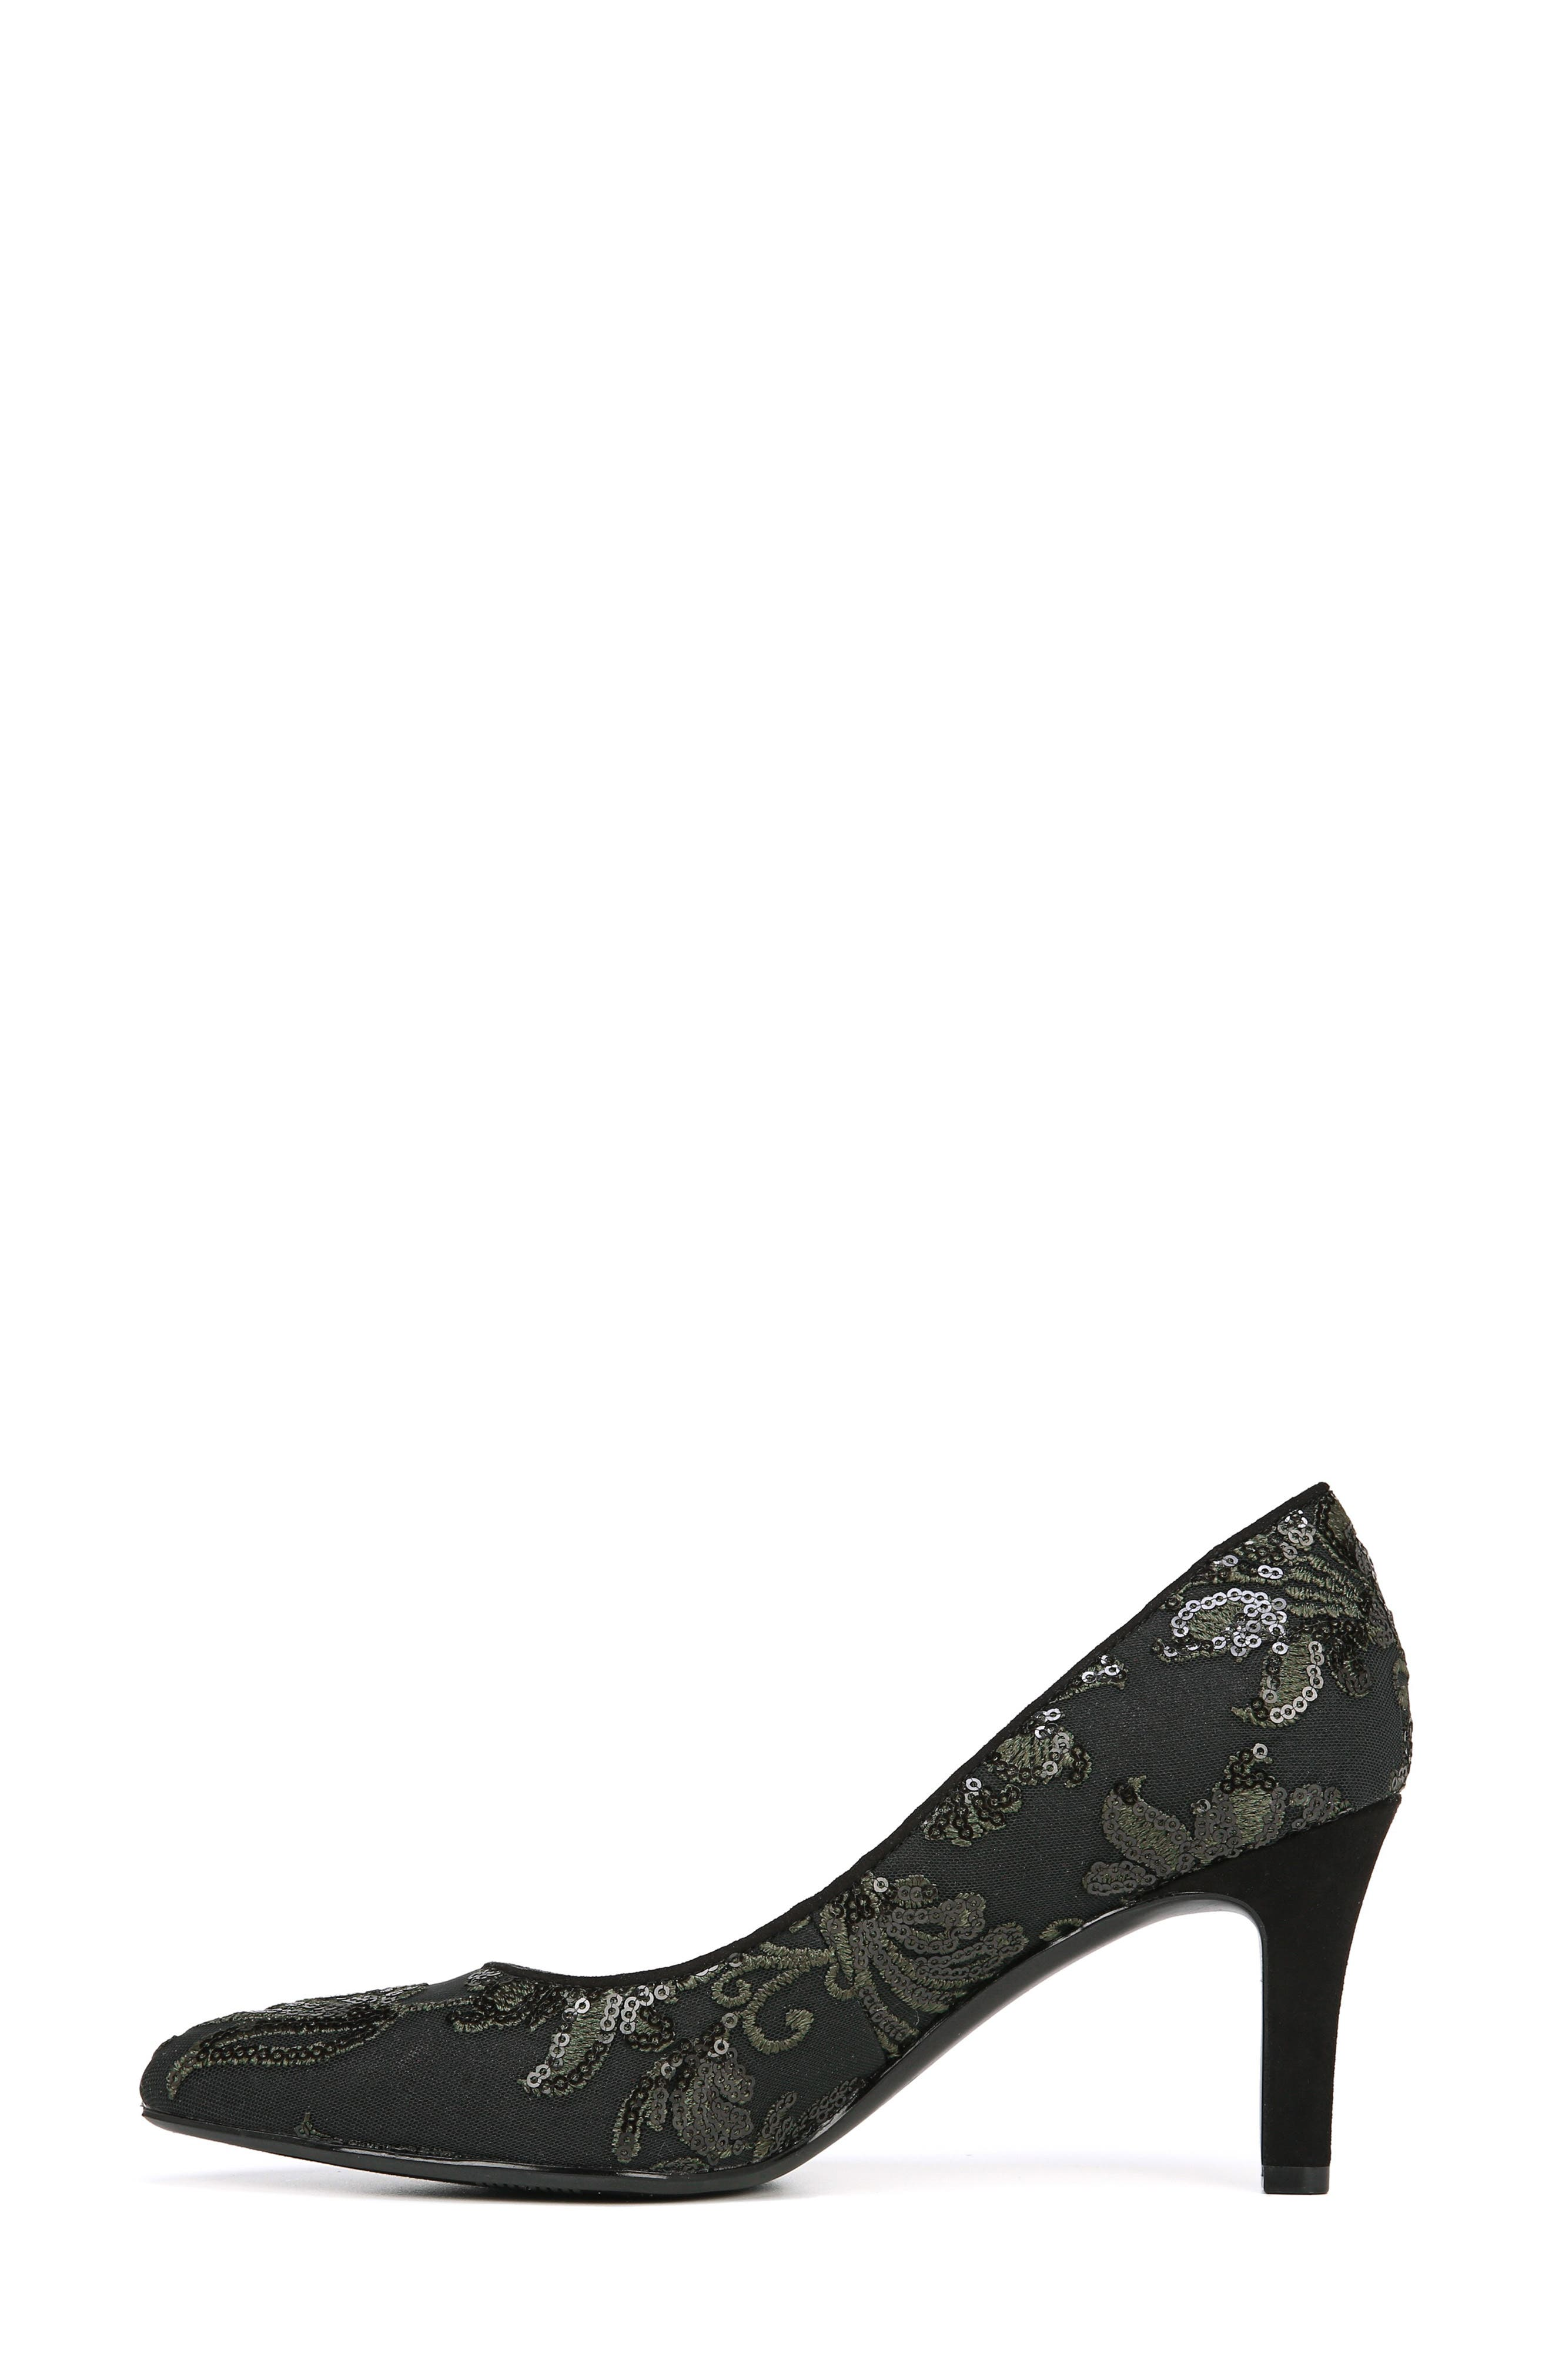 NATURALIZER, Natalie Pointy Toe Pump, Alternate thumbnail 8, color, FERN GREEN EMBROIDERED